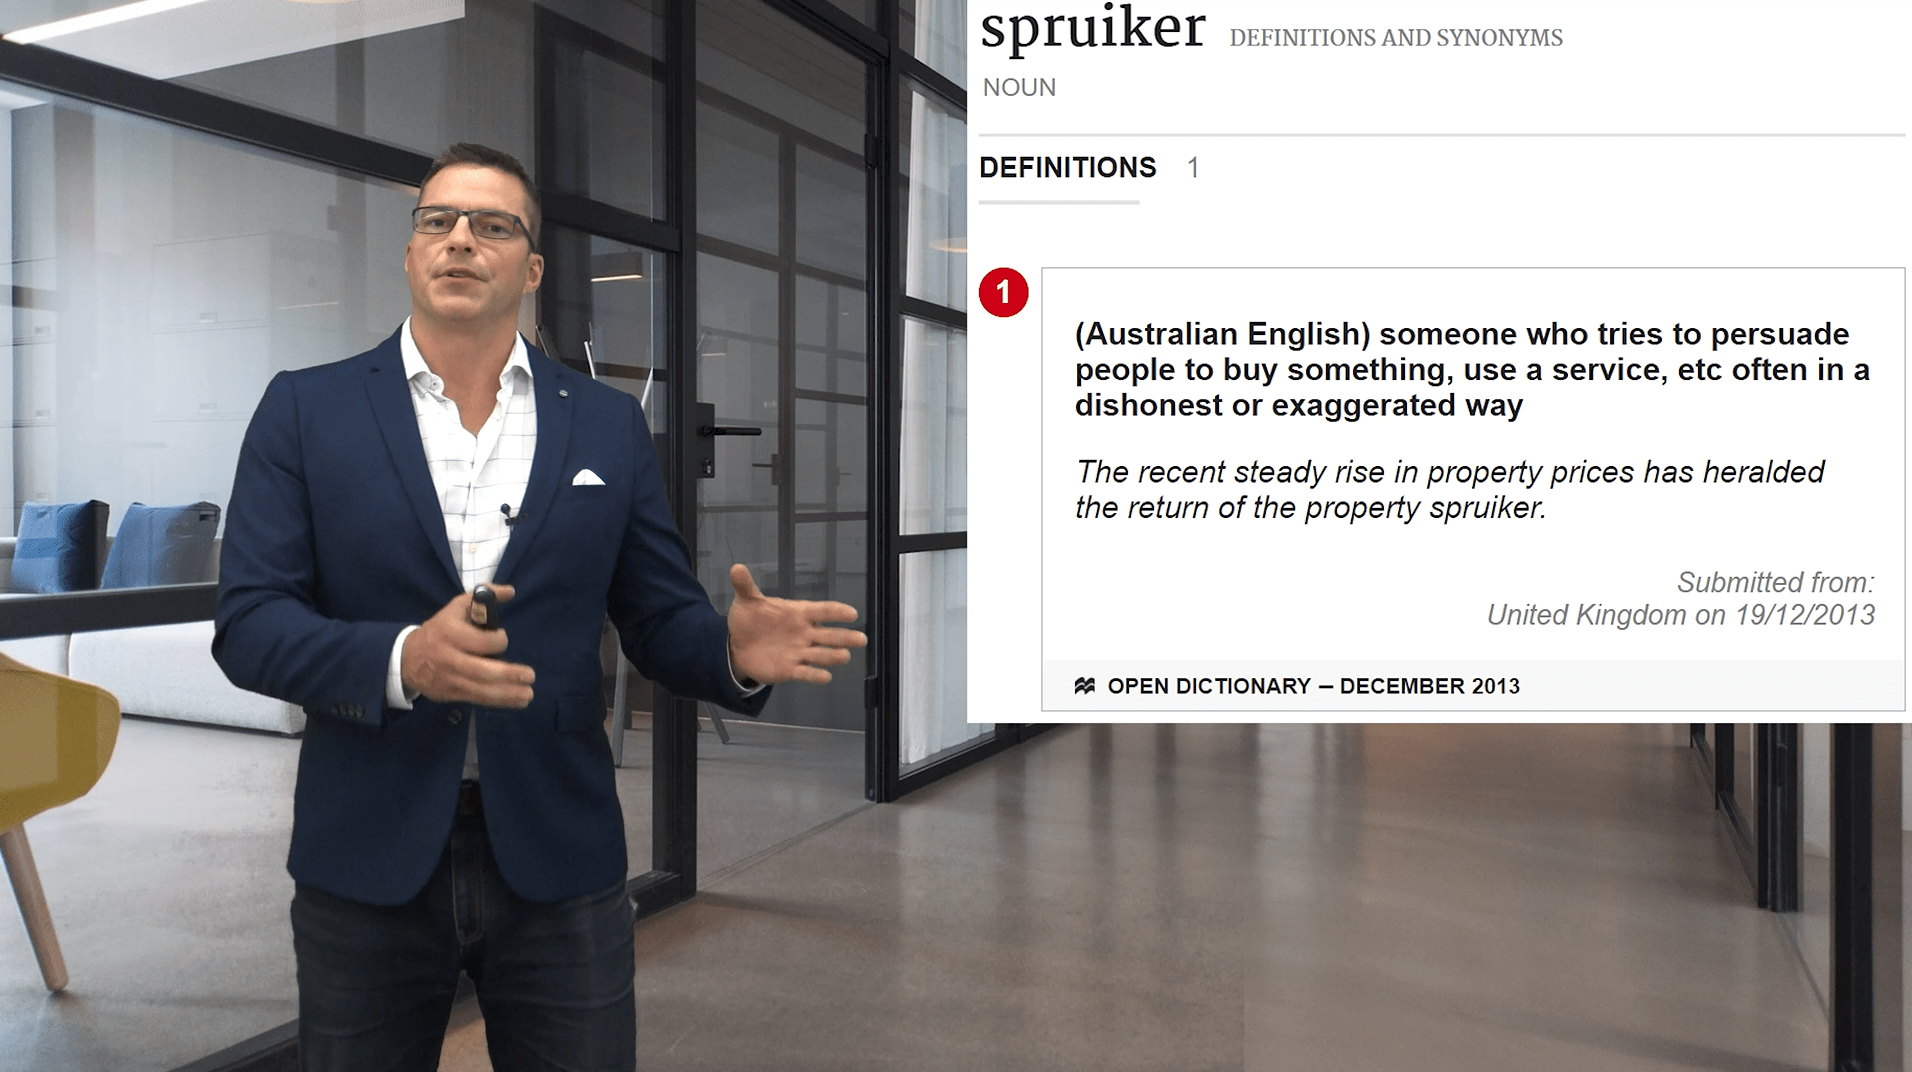 How to spot a Property Spruiker